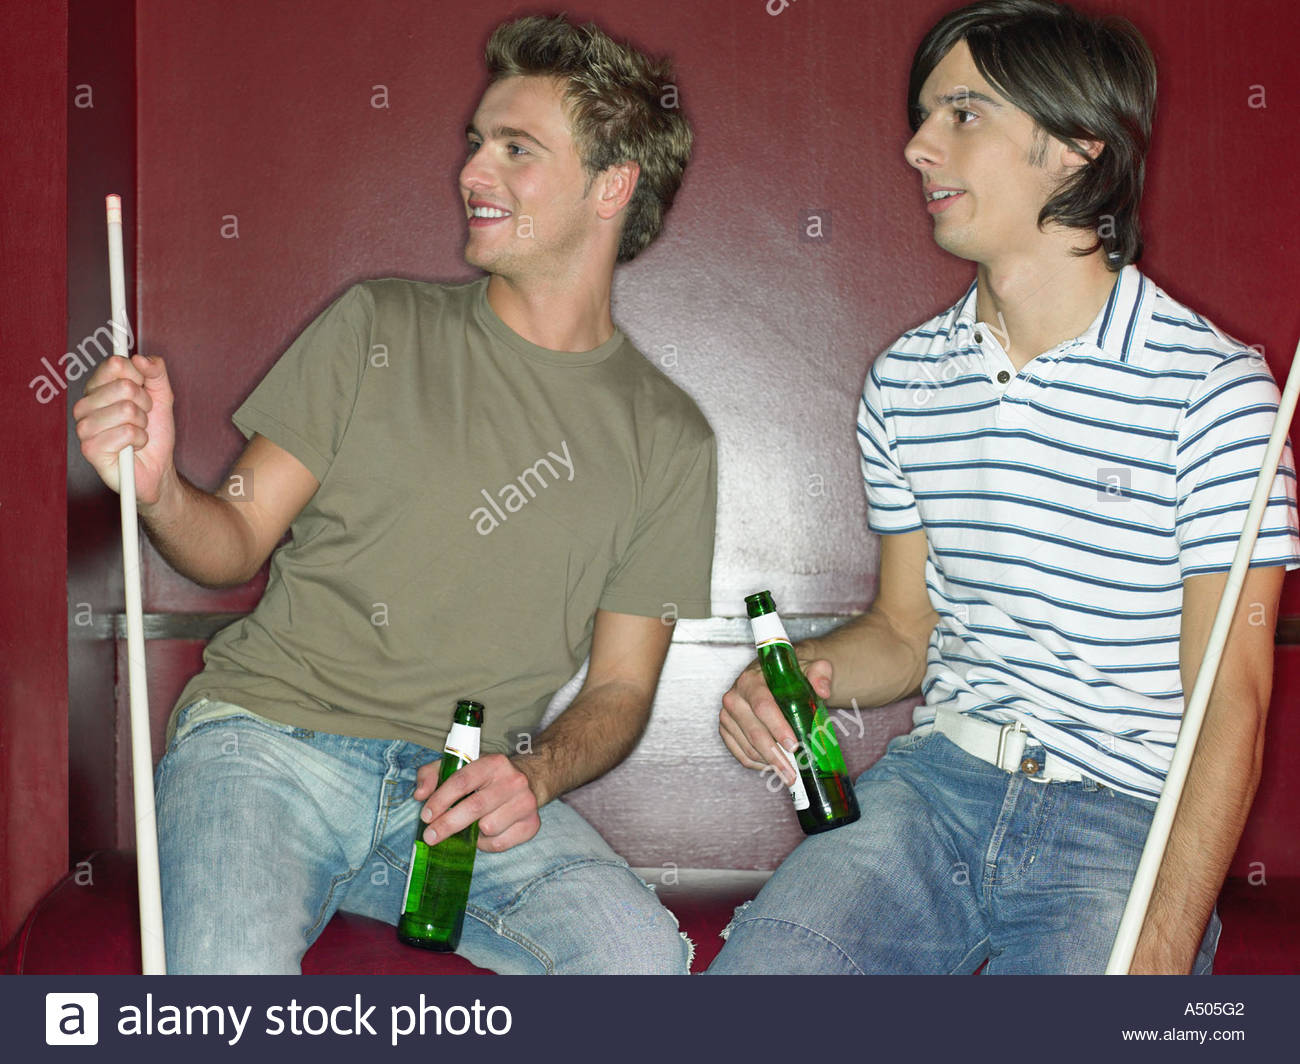 Two men sitting in a bar holding pool cues and drinks - Stock Image